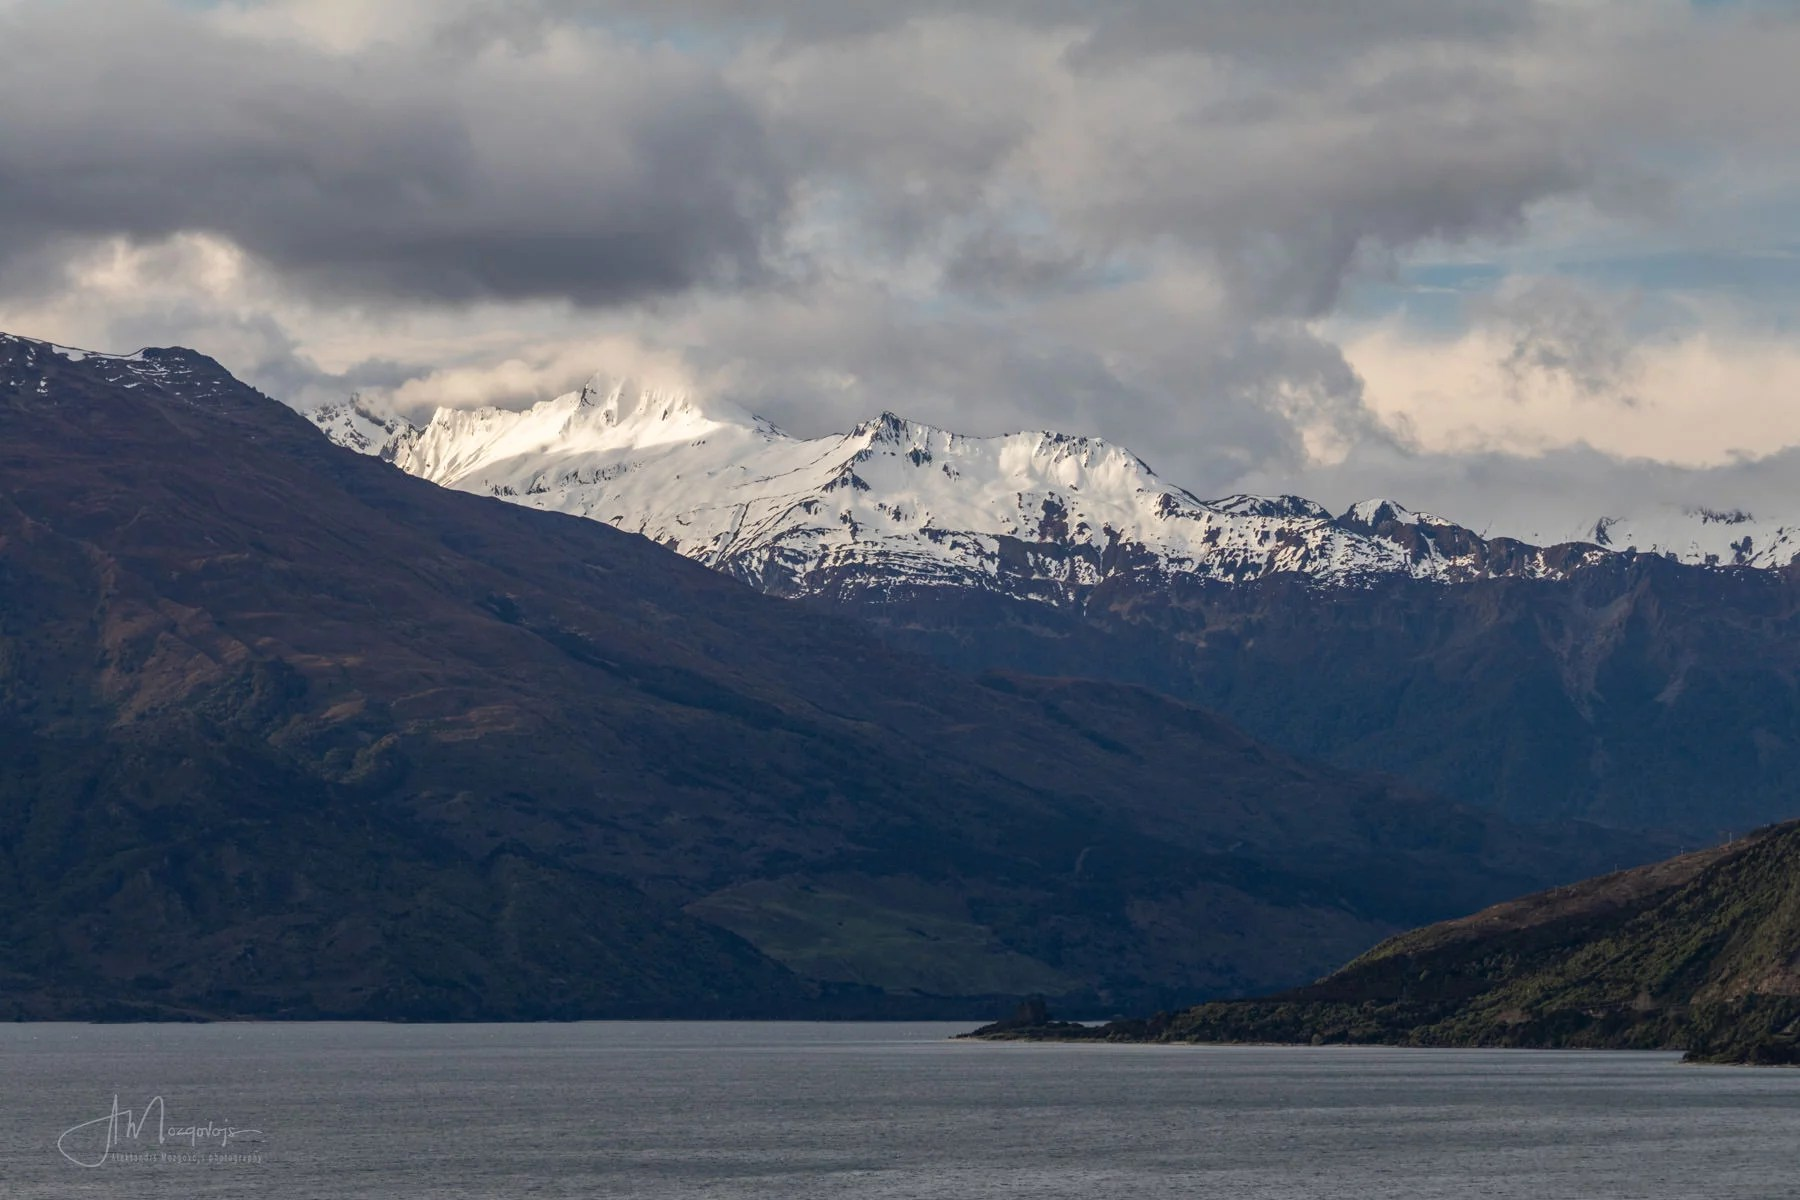 Snowy Mountains above lake Wanaka, New Zealand